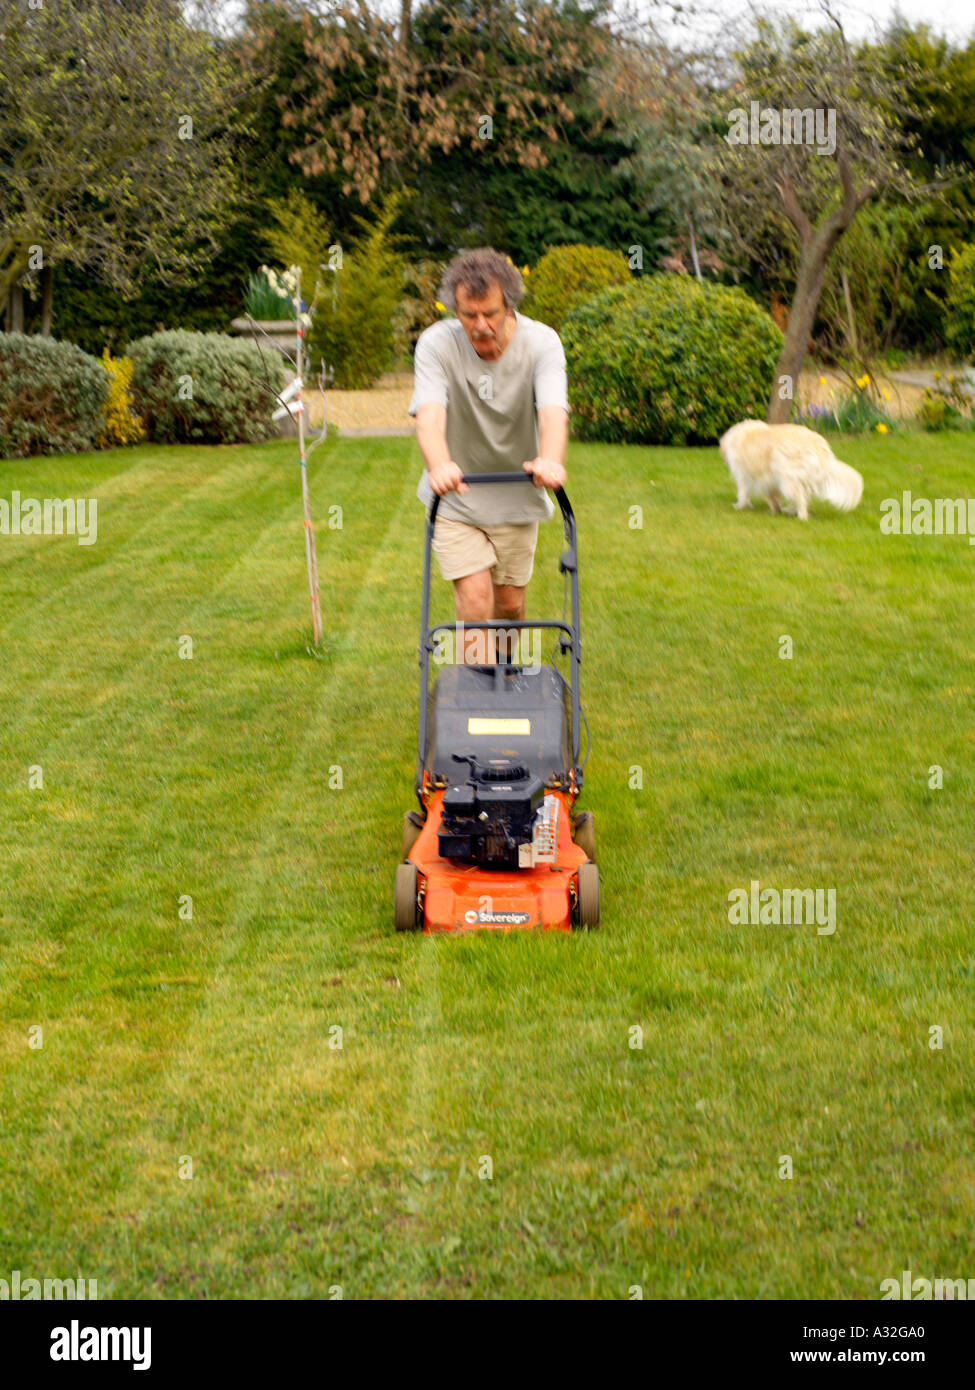 Man Mowing Lawn with Petrol Lawn Mower Lawn Stripes - Stock Image